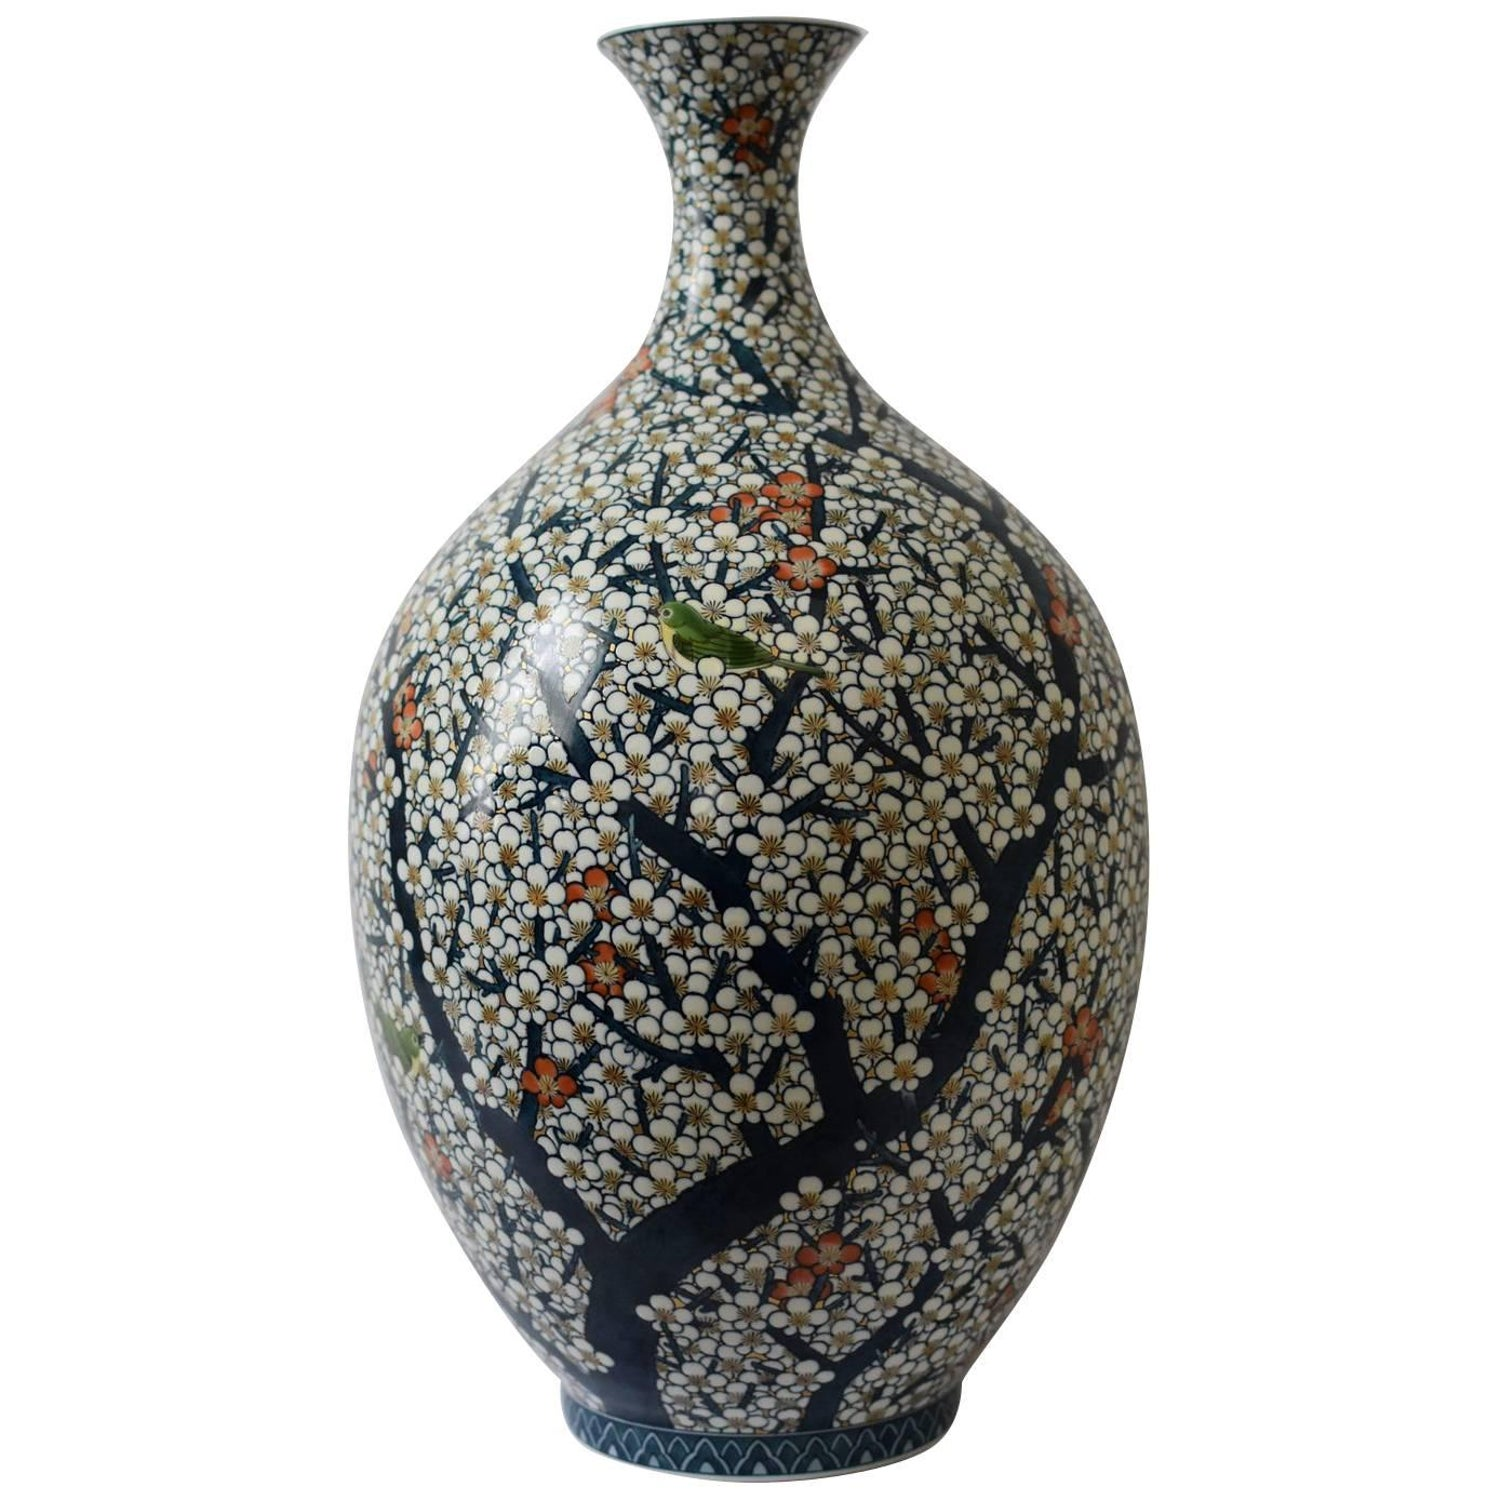 Gilded hand painted massive porcelain vase by japanese master gilded hand painted massive porcelain vase by japanese master artist for sale at 1stdibs reviewsmspy